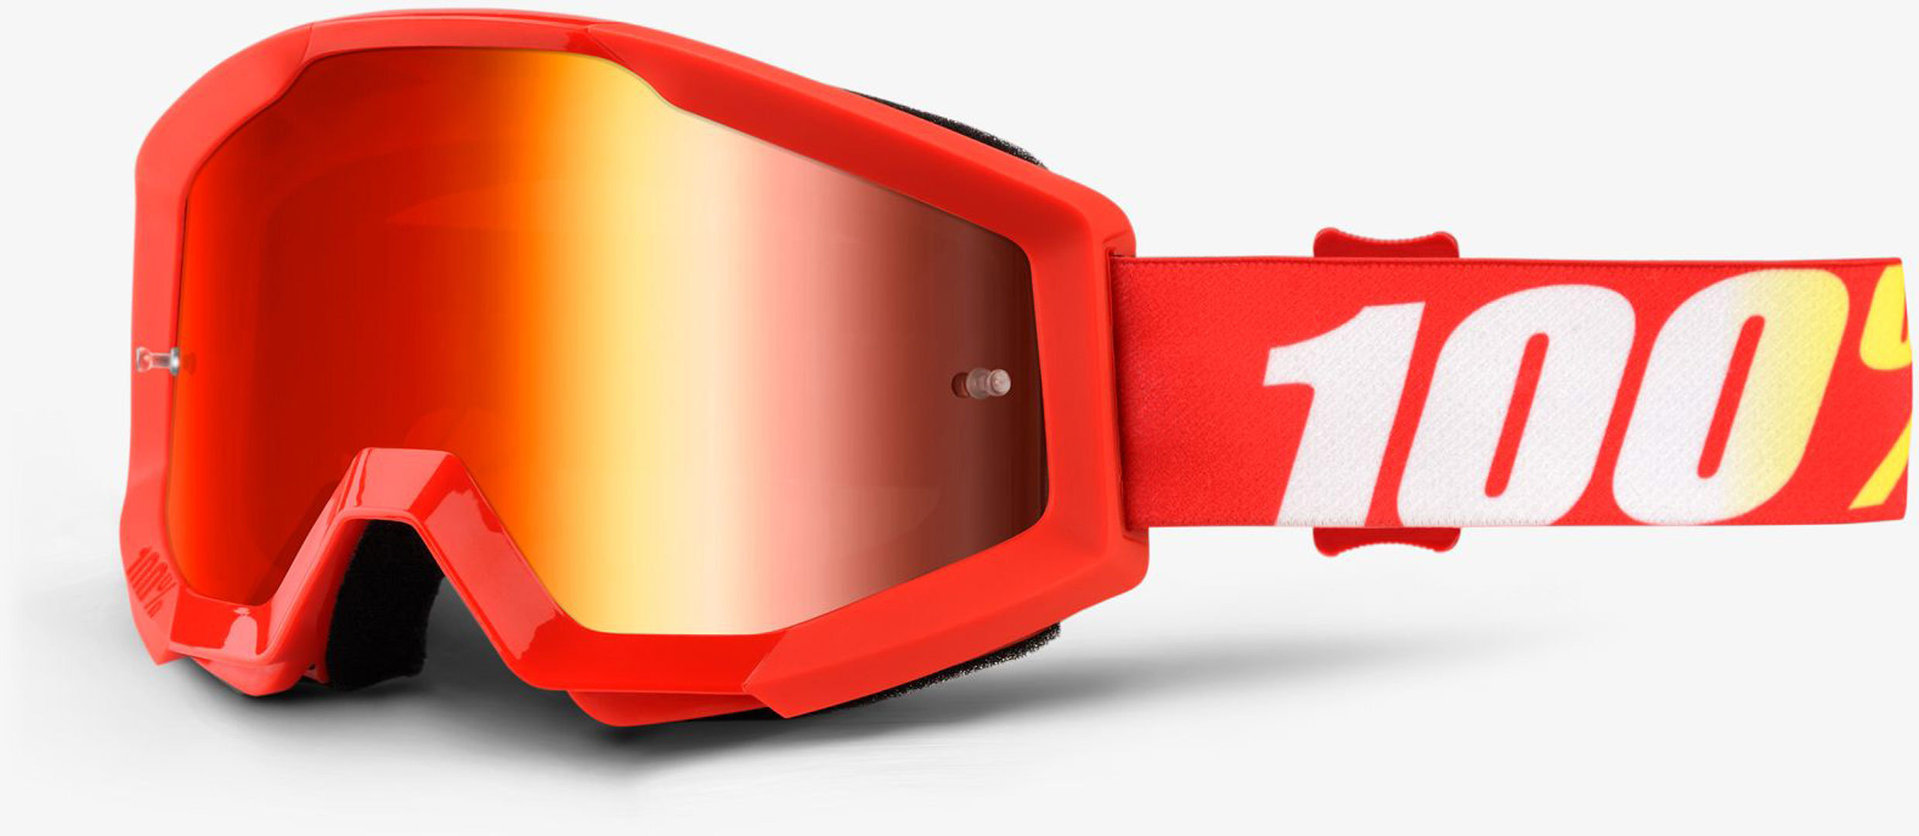 100% Strata Extra Motocross Brille, rot, rot RC Modellbau